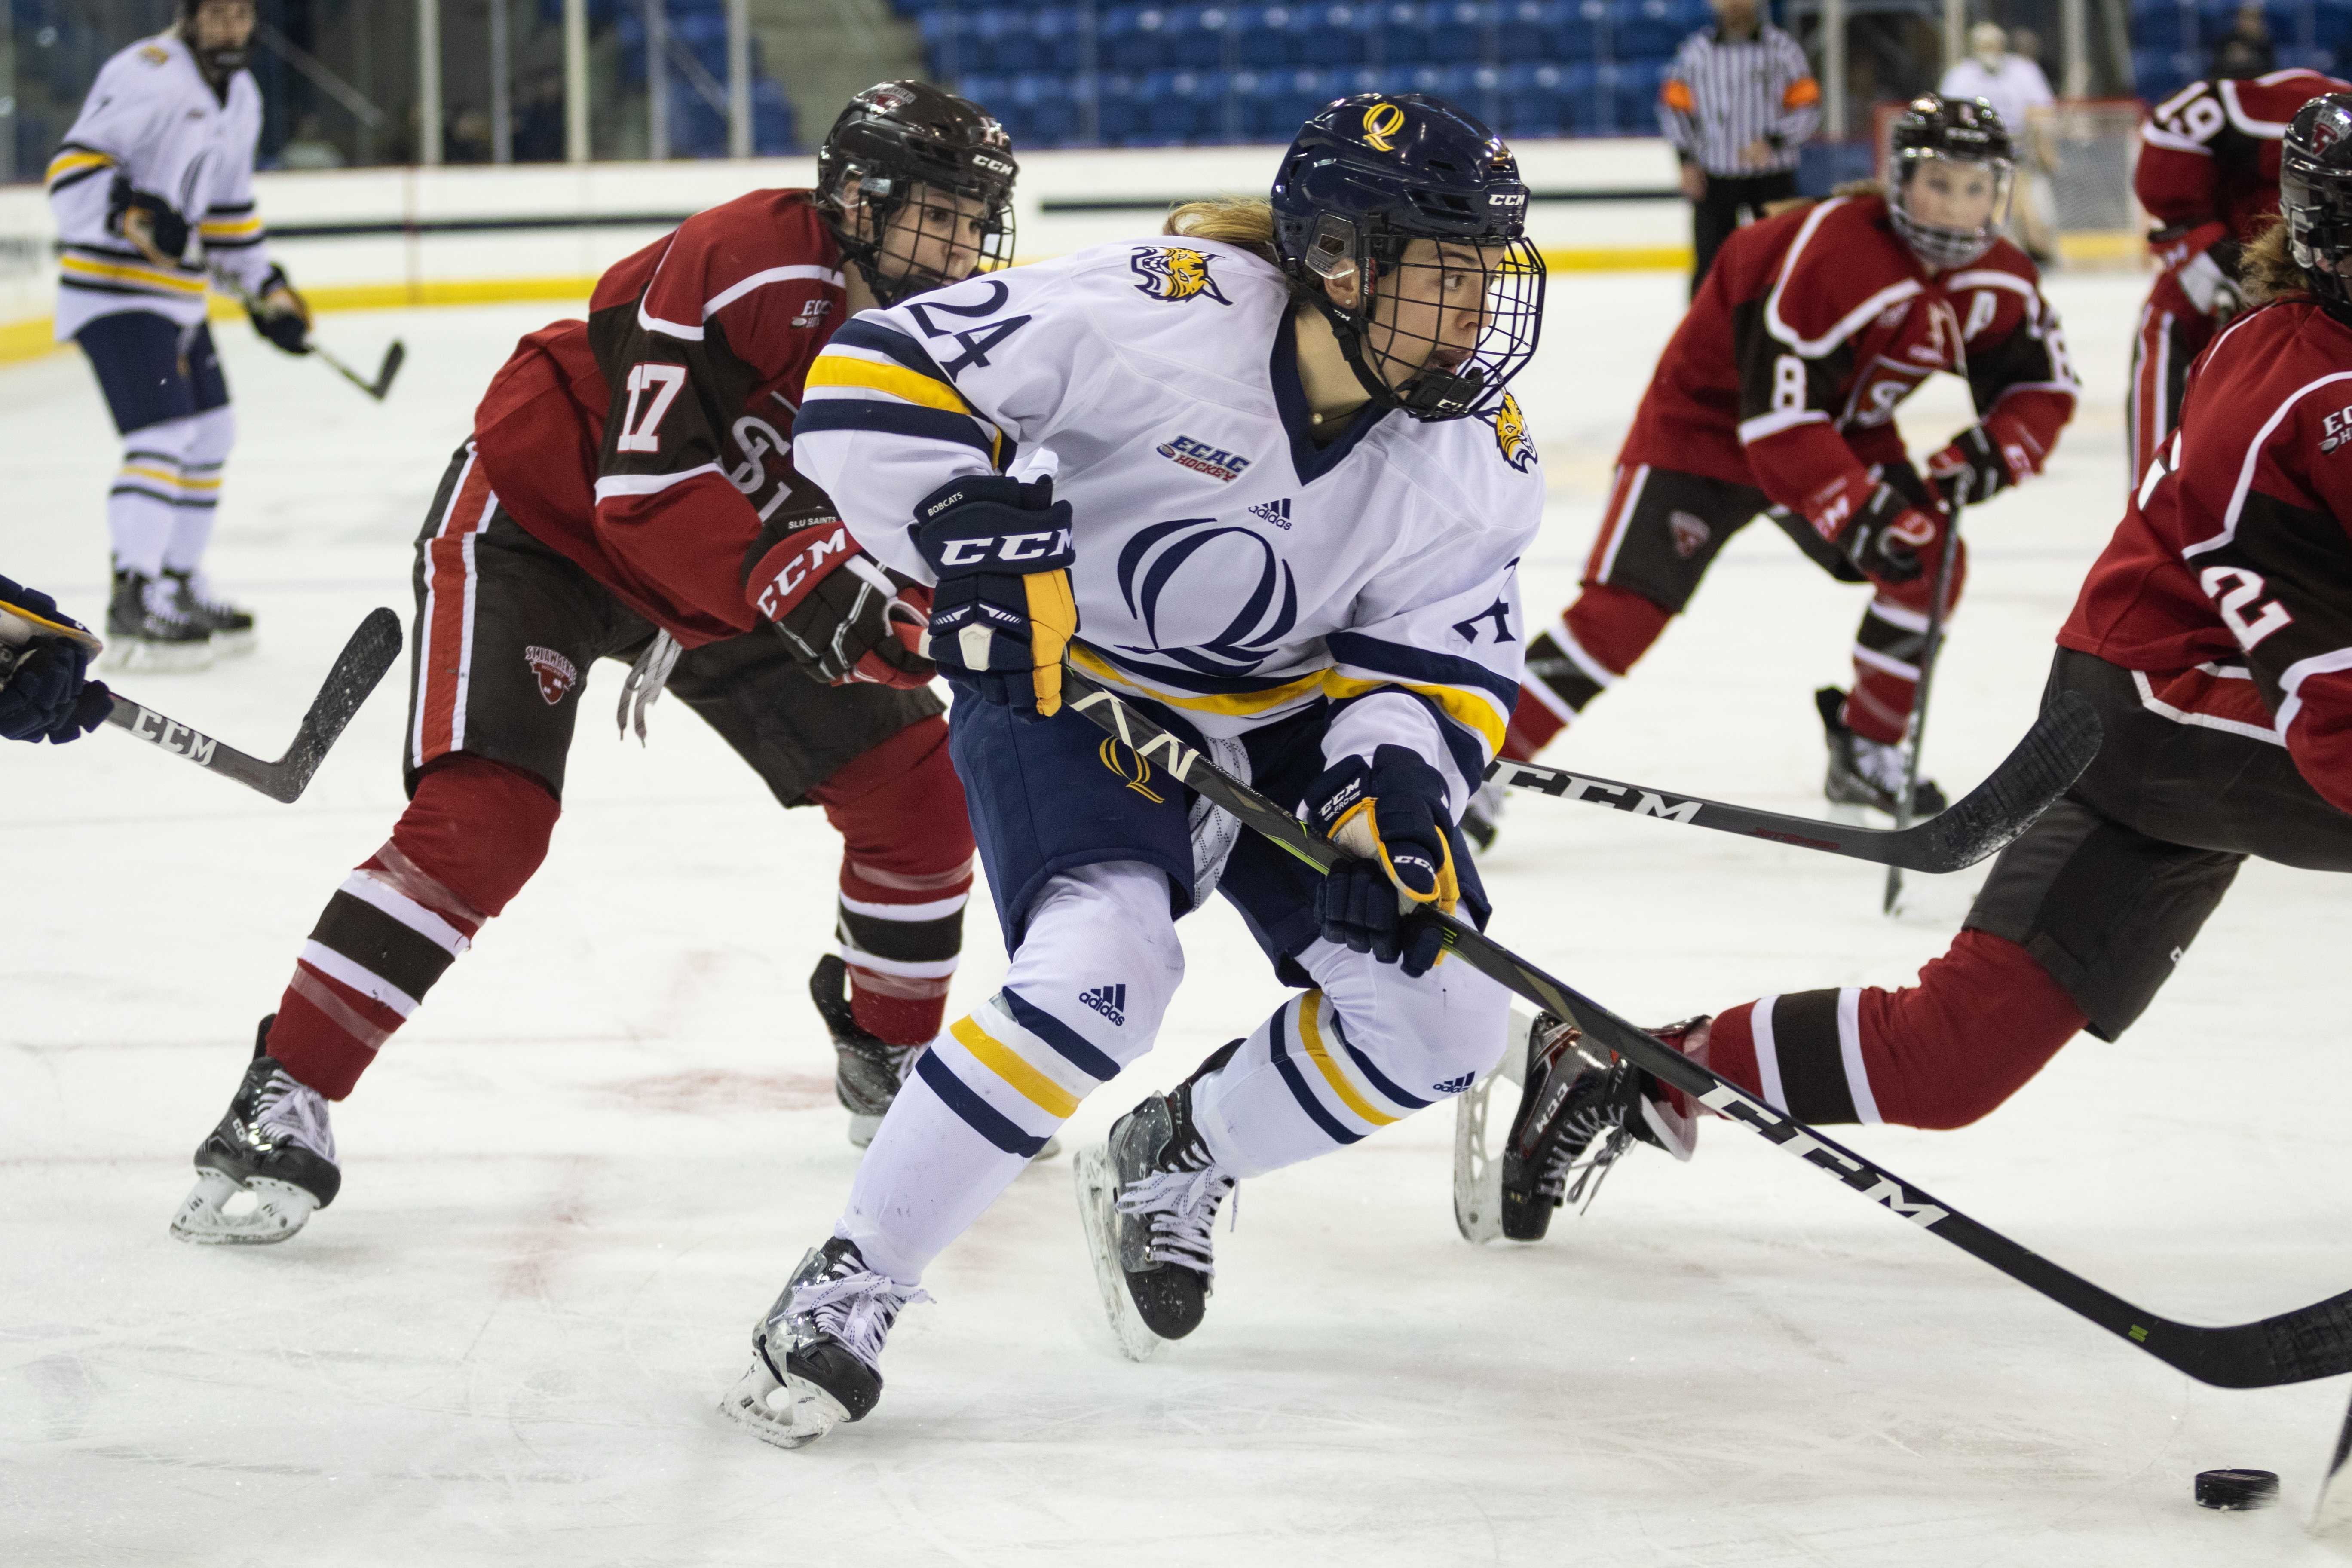 Late push isn't enough as Quinnipiac women's ice hockey loses to St. Lawrence